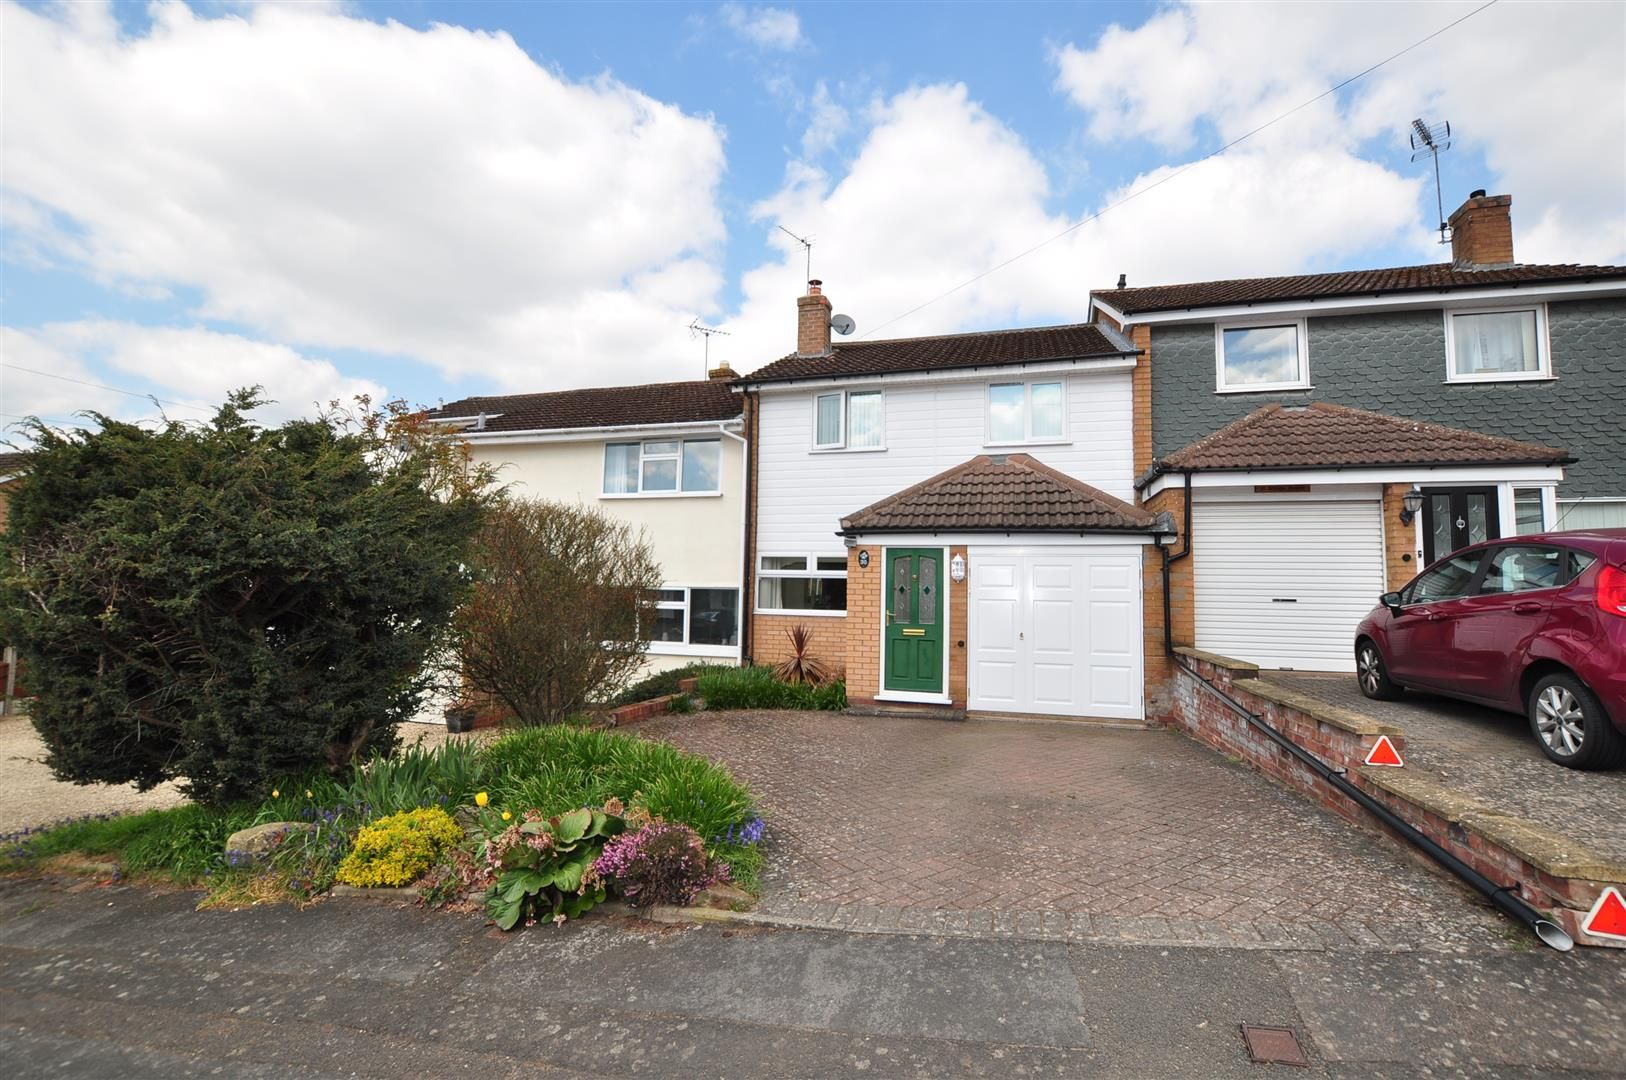 3 bed house for sale in Hagley 15